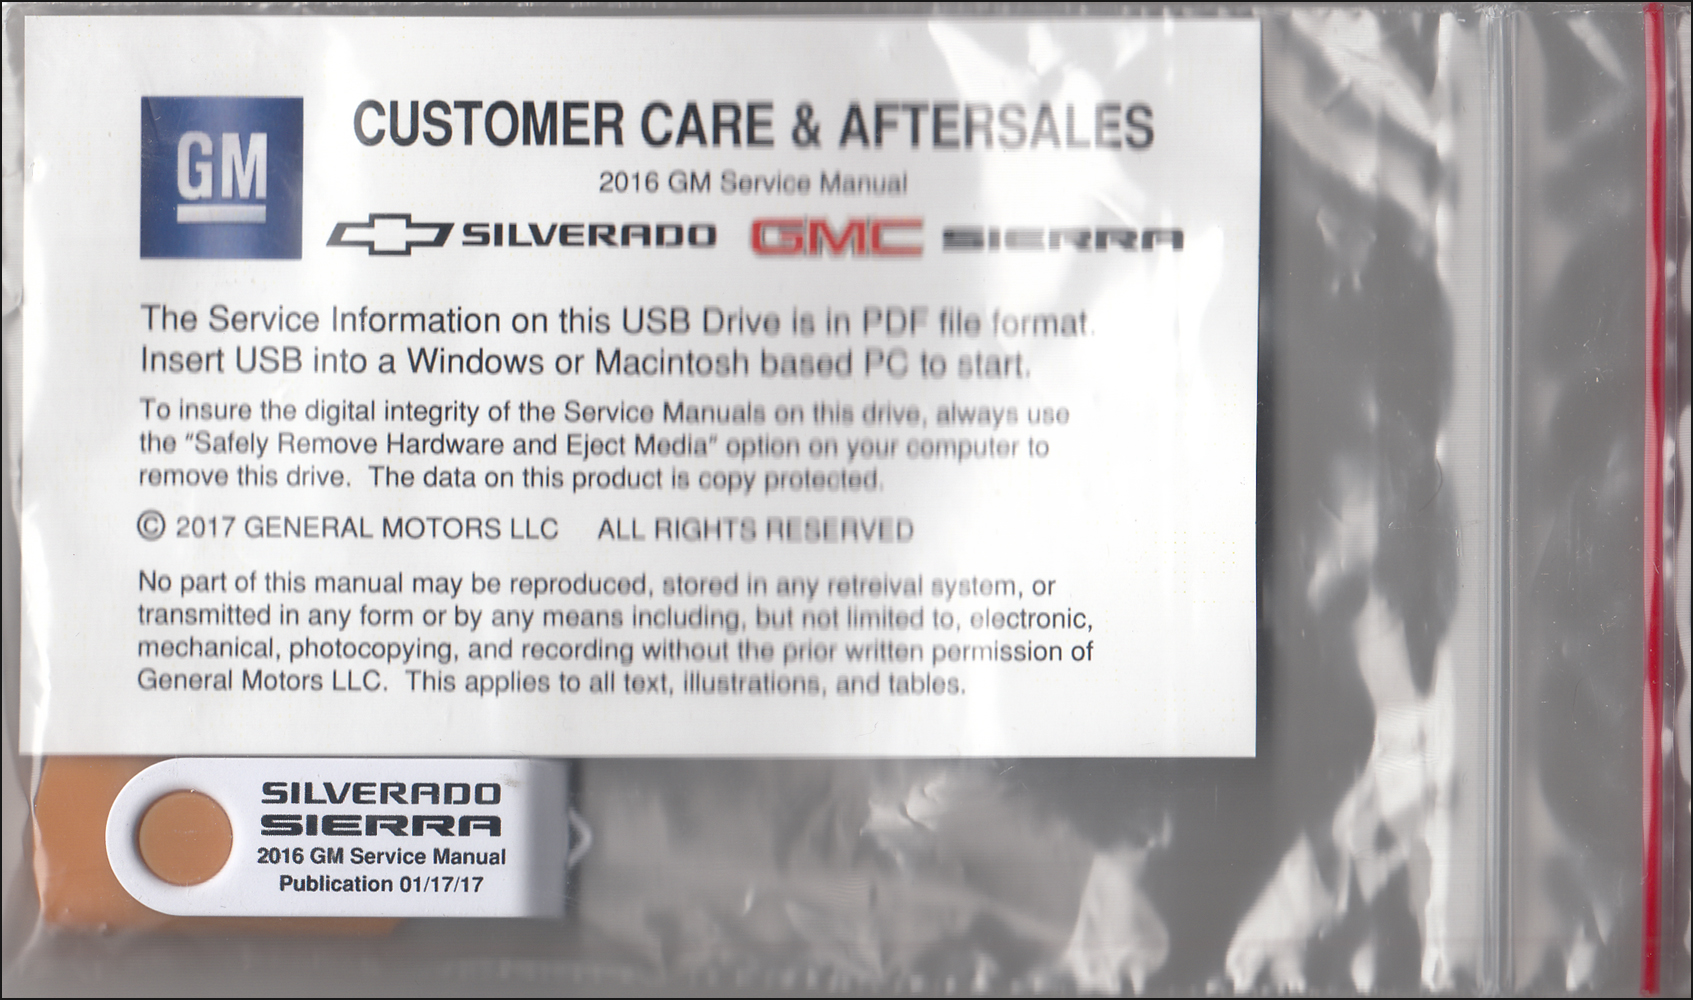 2016 Chevrolet Silverado GMC Sierra Repair Shop Manual on USB drive Chevy